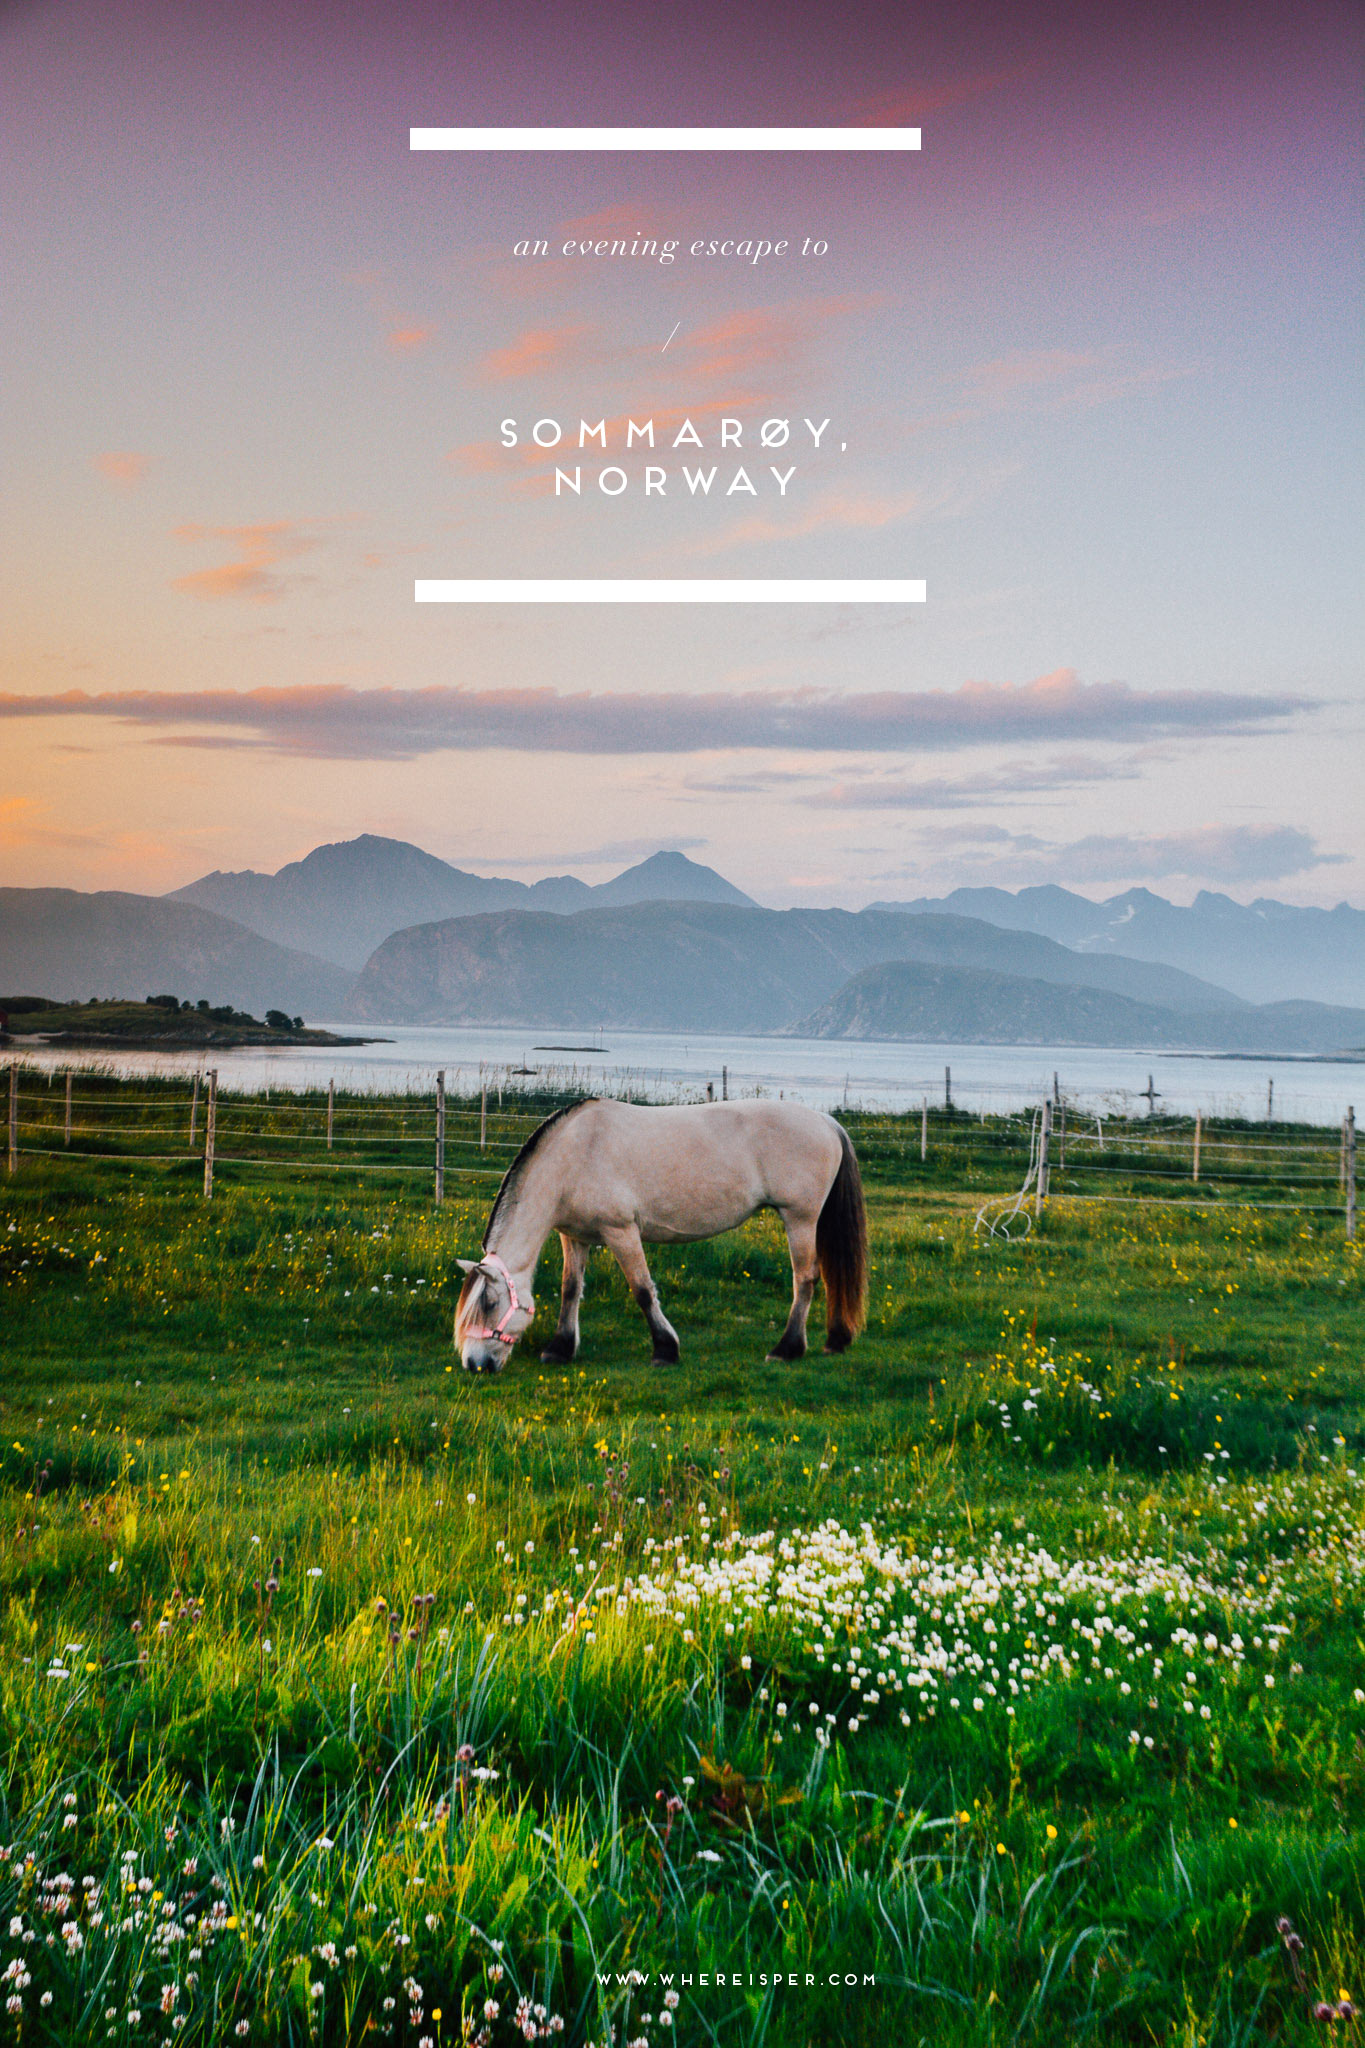 Sommarøy, Norway Where Is Per